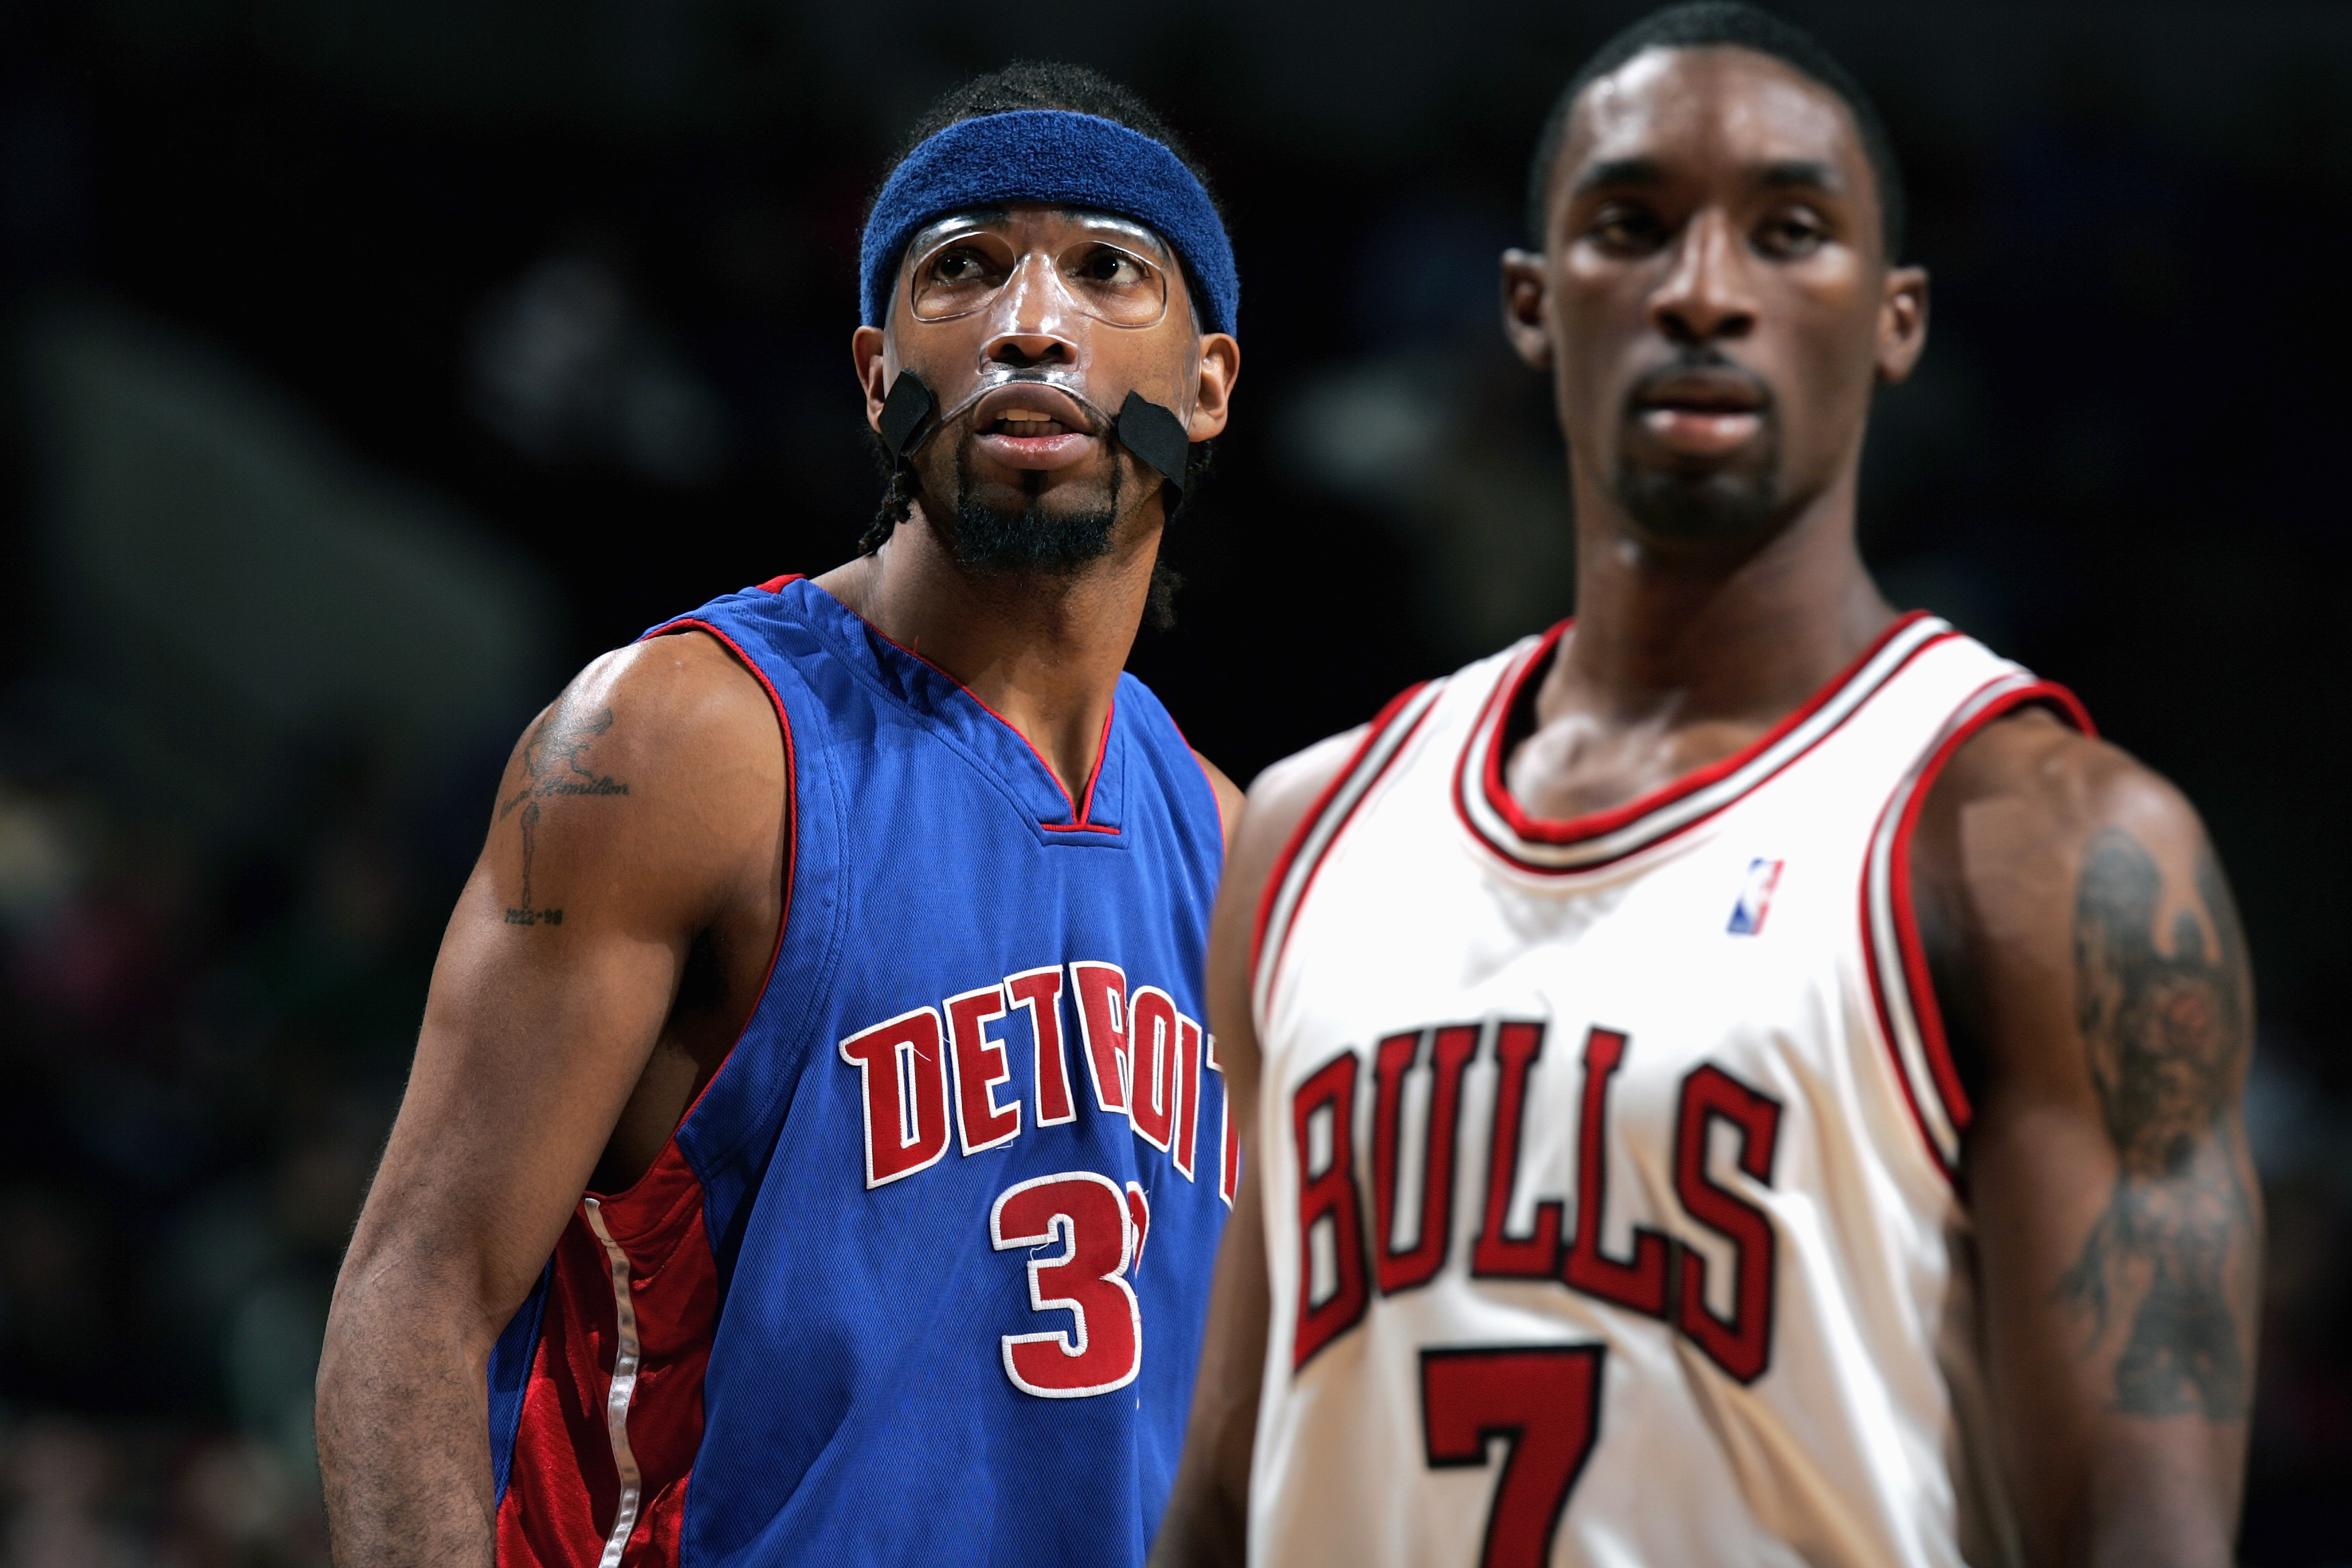 CHICAGO - JANUARY 3:  Richard Hamilton #32 of the Detroit Pistons stands on the court with Ben Gordon #7 of the Chicago Bulls during the game on January 3, 2005 at the United Center in Chicago, Illinois. The Pistons defeated the Bulls 87-80. NOTE TO USER: